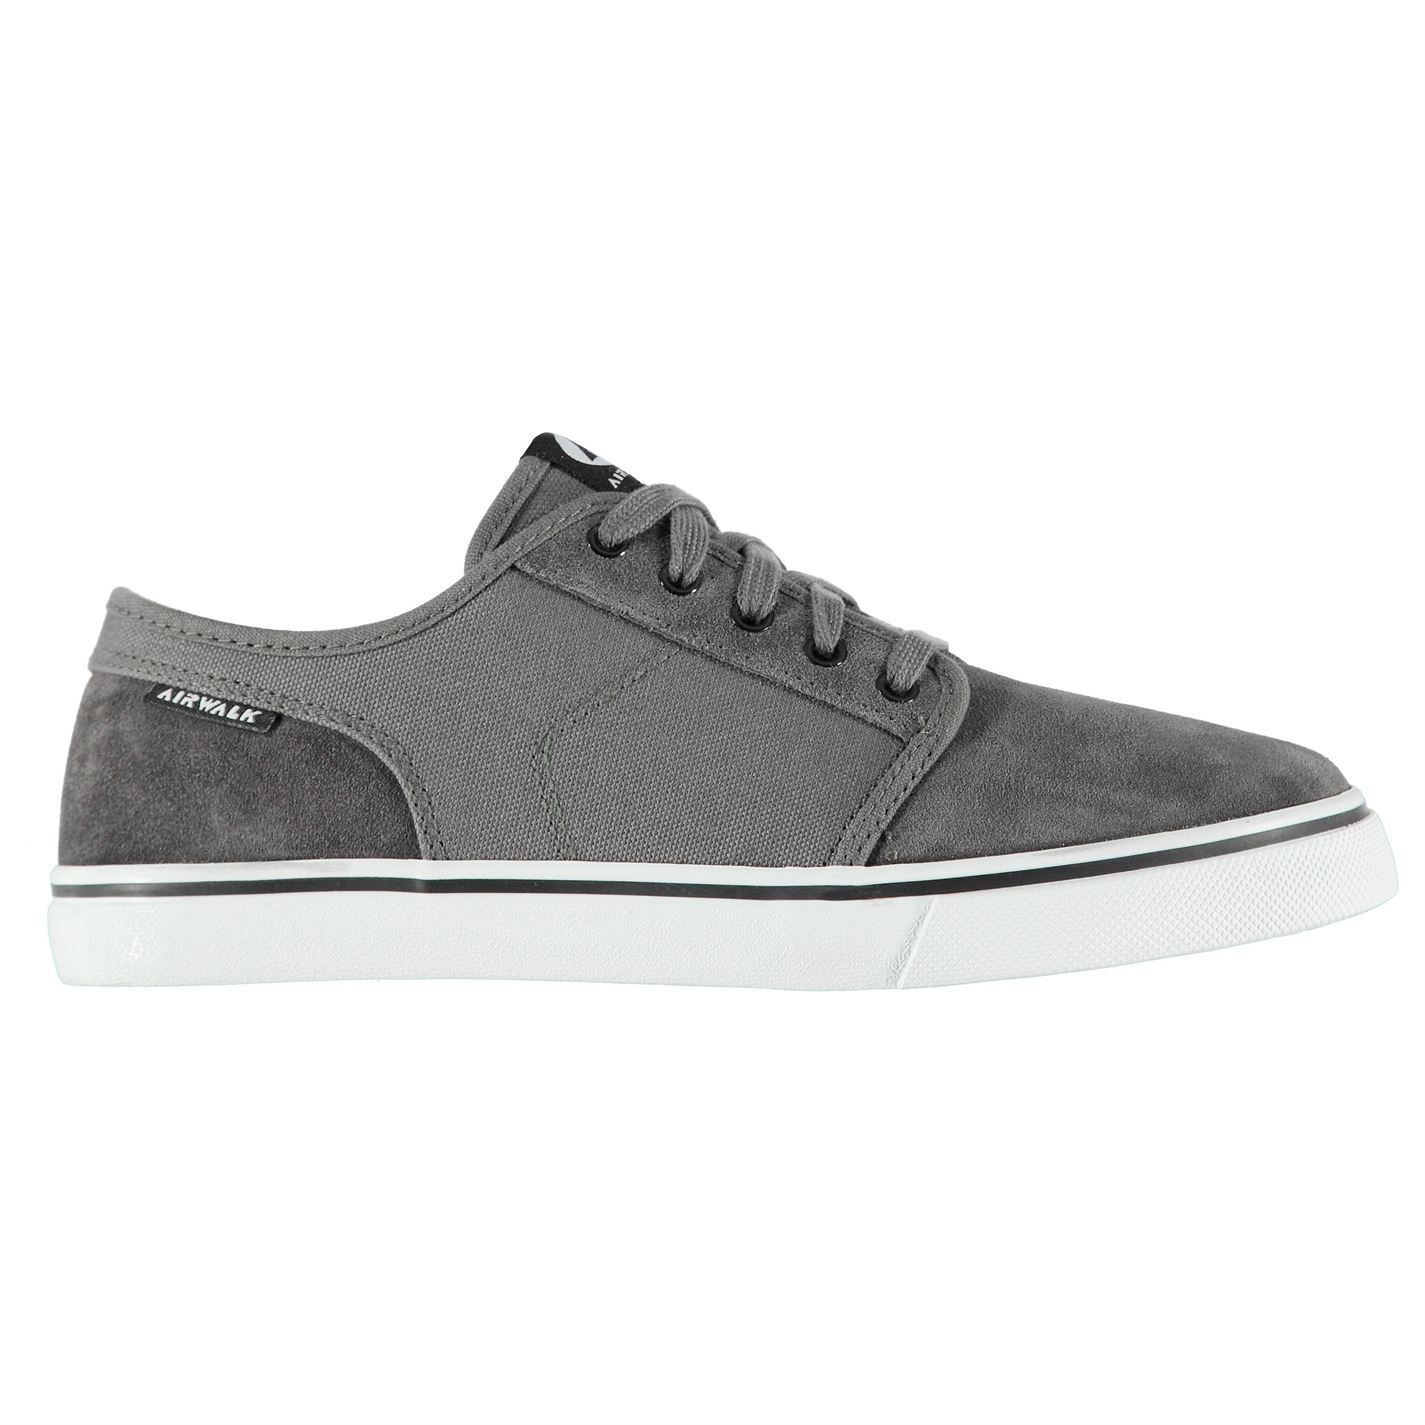 1a0762c9bc034 Airwalk Tempo 2 Skate Shoes Mens Grey Skateboarding Trainers Sneakers